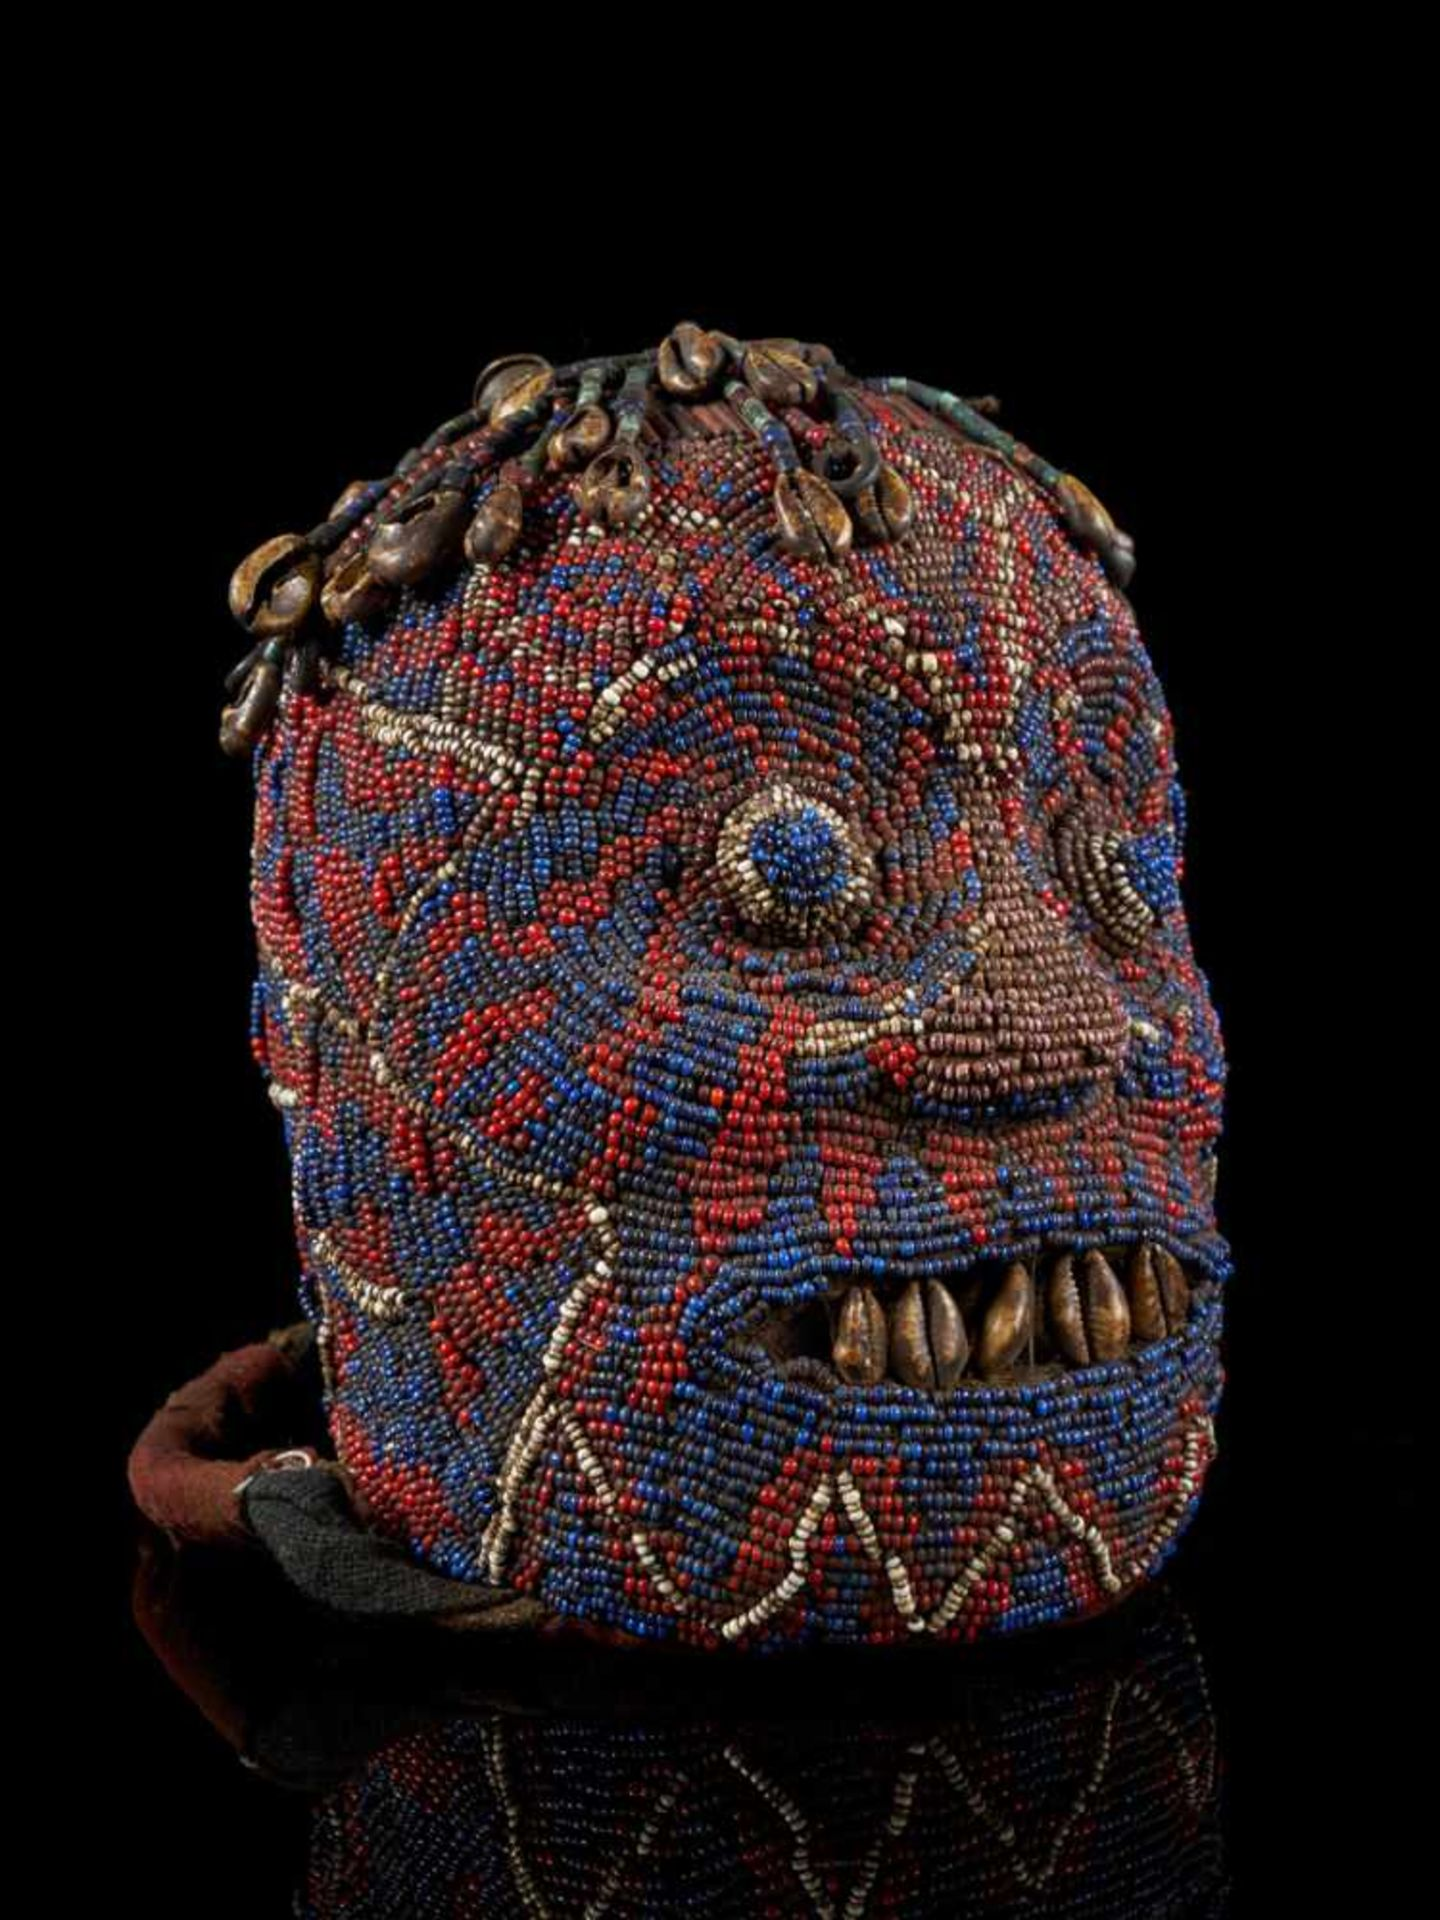 "Beaded Ceremonial Head ""Adwonzen"", Grassland People, Cameroon - Tribal ArtBeaded heads such as this, - Bild 6 aus 6"